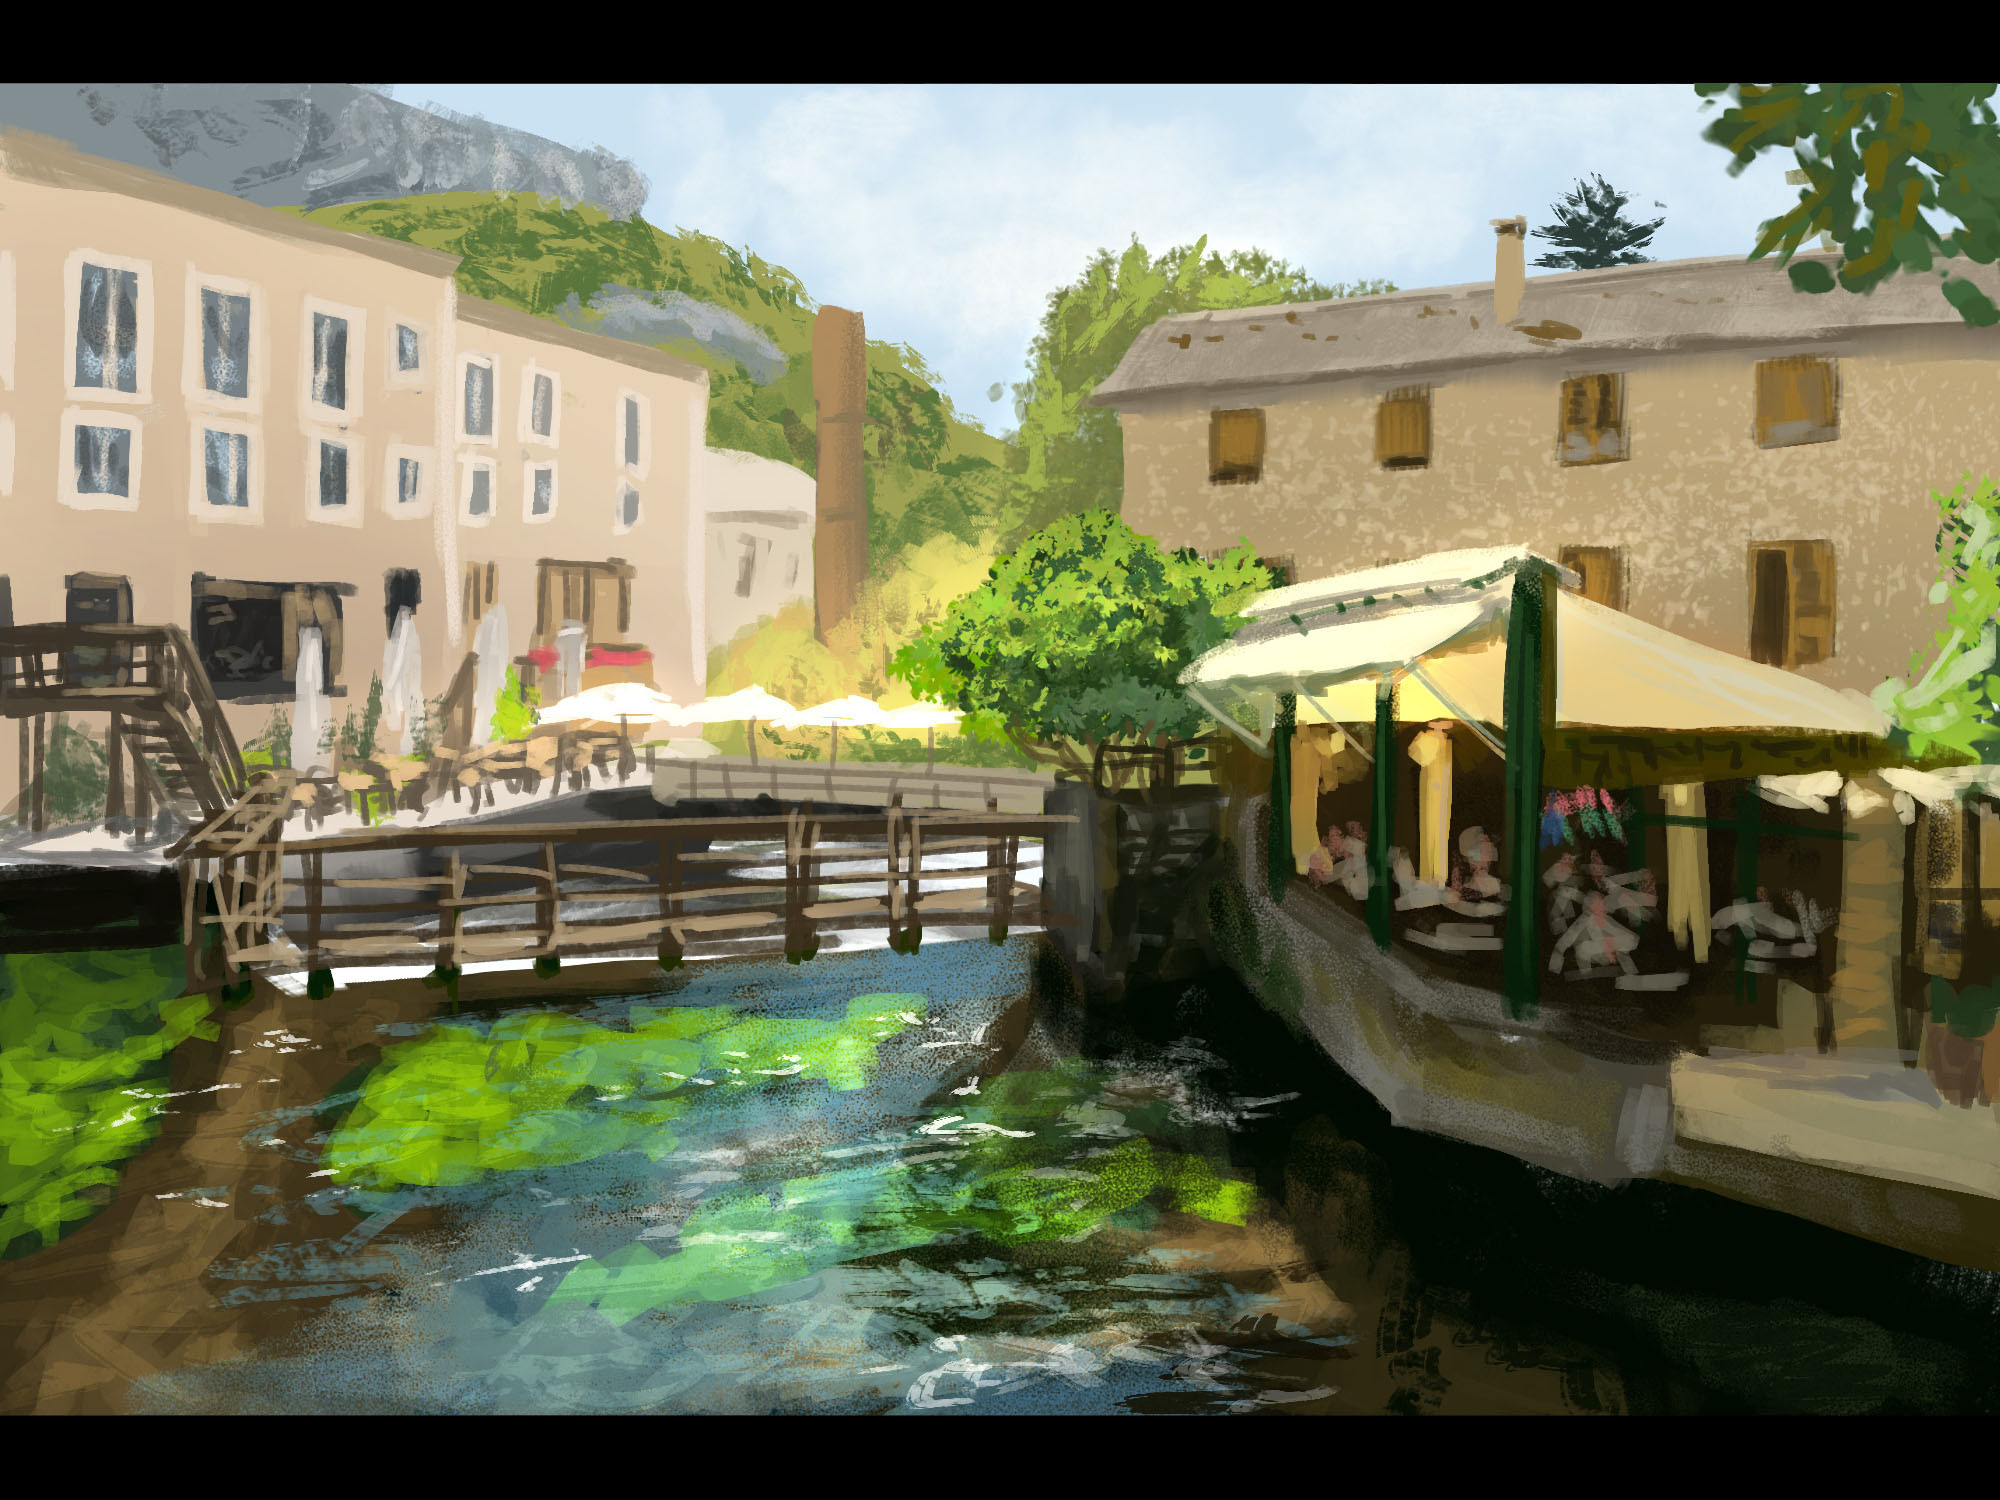 Photo Study: Riverside Cafe (90-120 min)